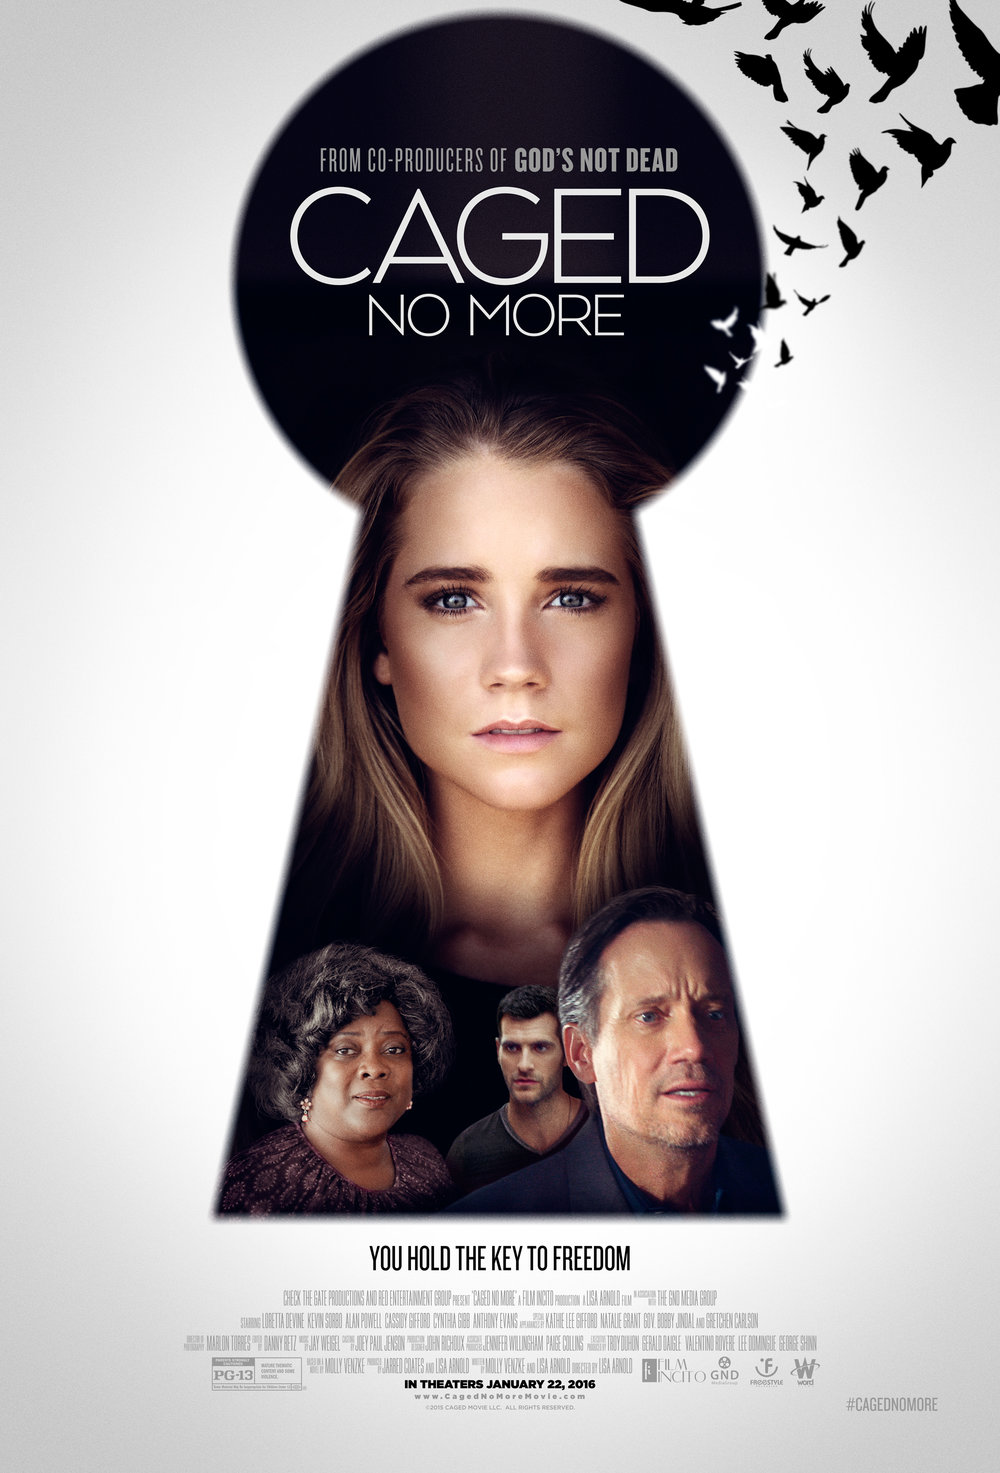 Human Trafficking - Showing clips or the entire film of Caged No More, we will discuss the dangers of human trafficking. Based on the true story of one girls journey into a world no child should ever see. This is a relevant message for todays society with protecting yourself while using the internet and being aware of your surroundings at all times. This film was rated PG-13 and was intended for family discussions.